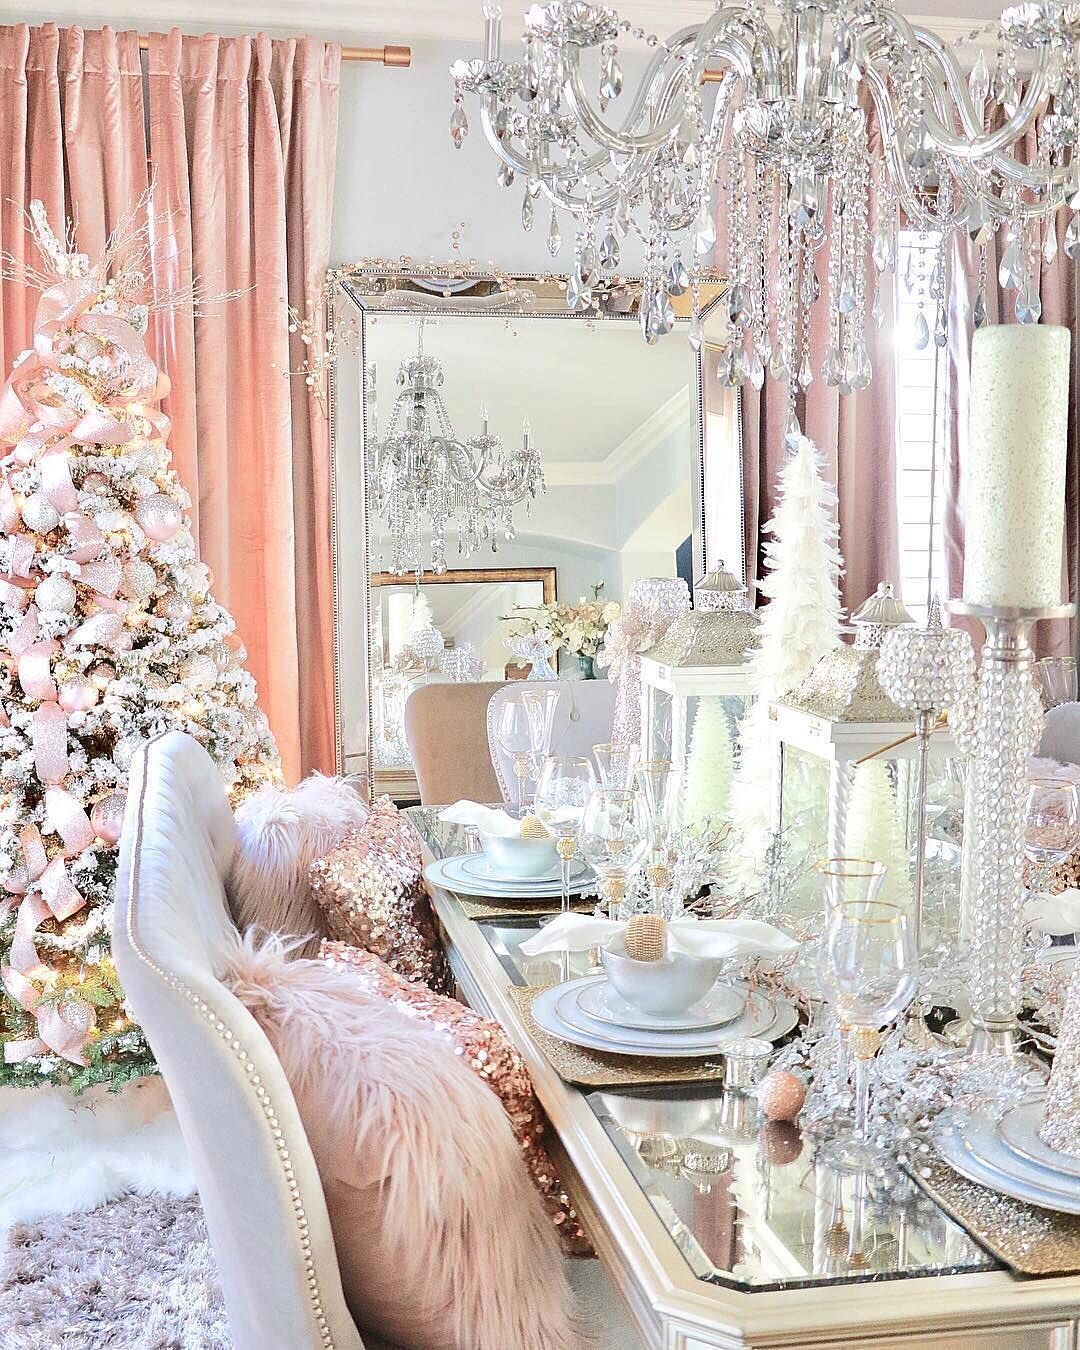 Stylish Home Decor Chic Furniture At Affordable Prices Elegant Christmas Decor Z Gallerie Christmas Tree Elegant Christmas